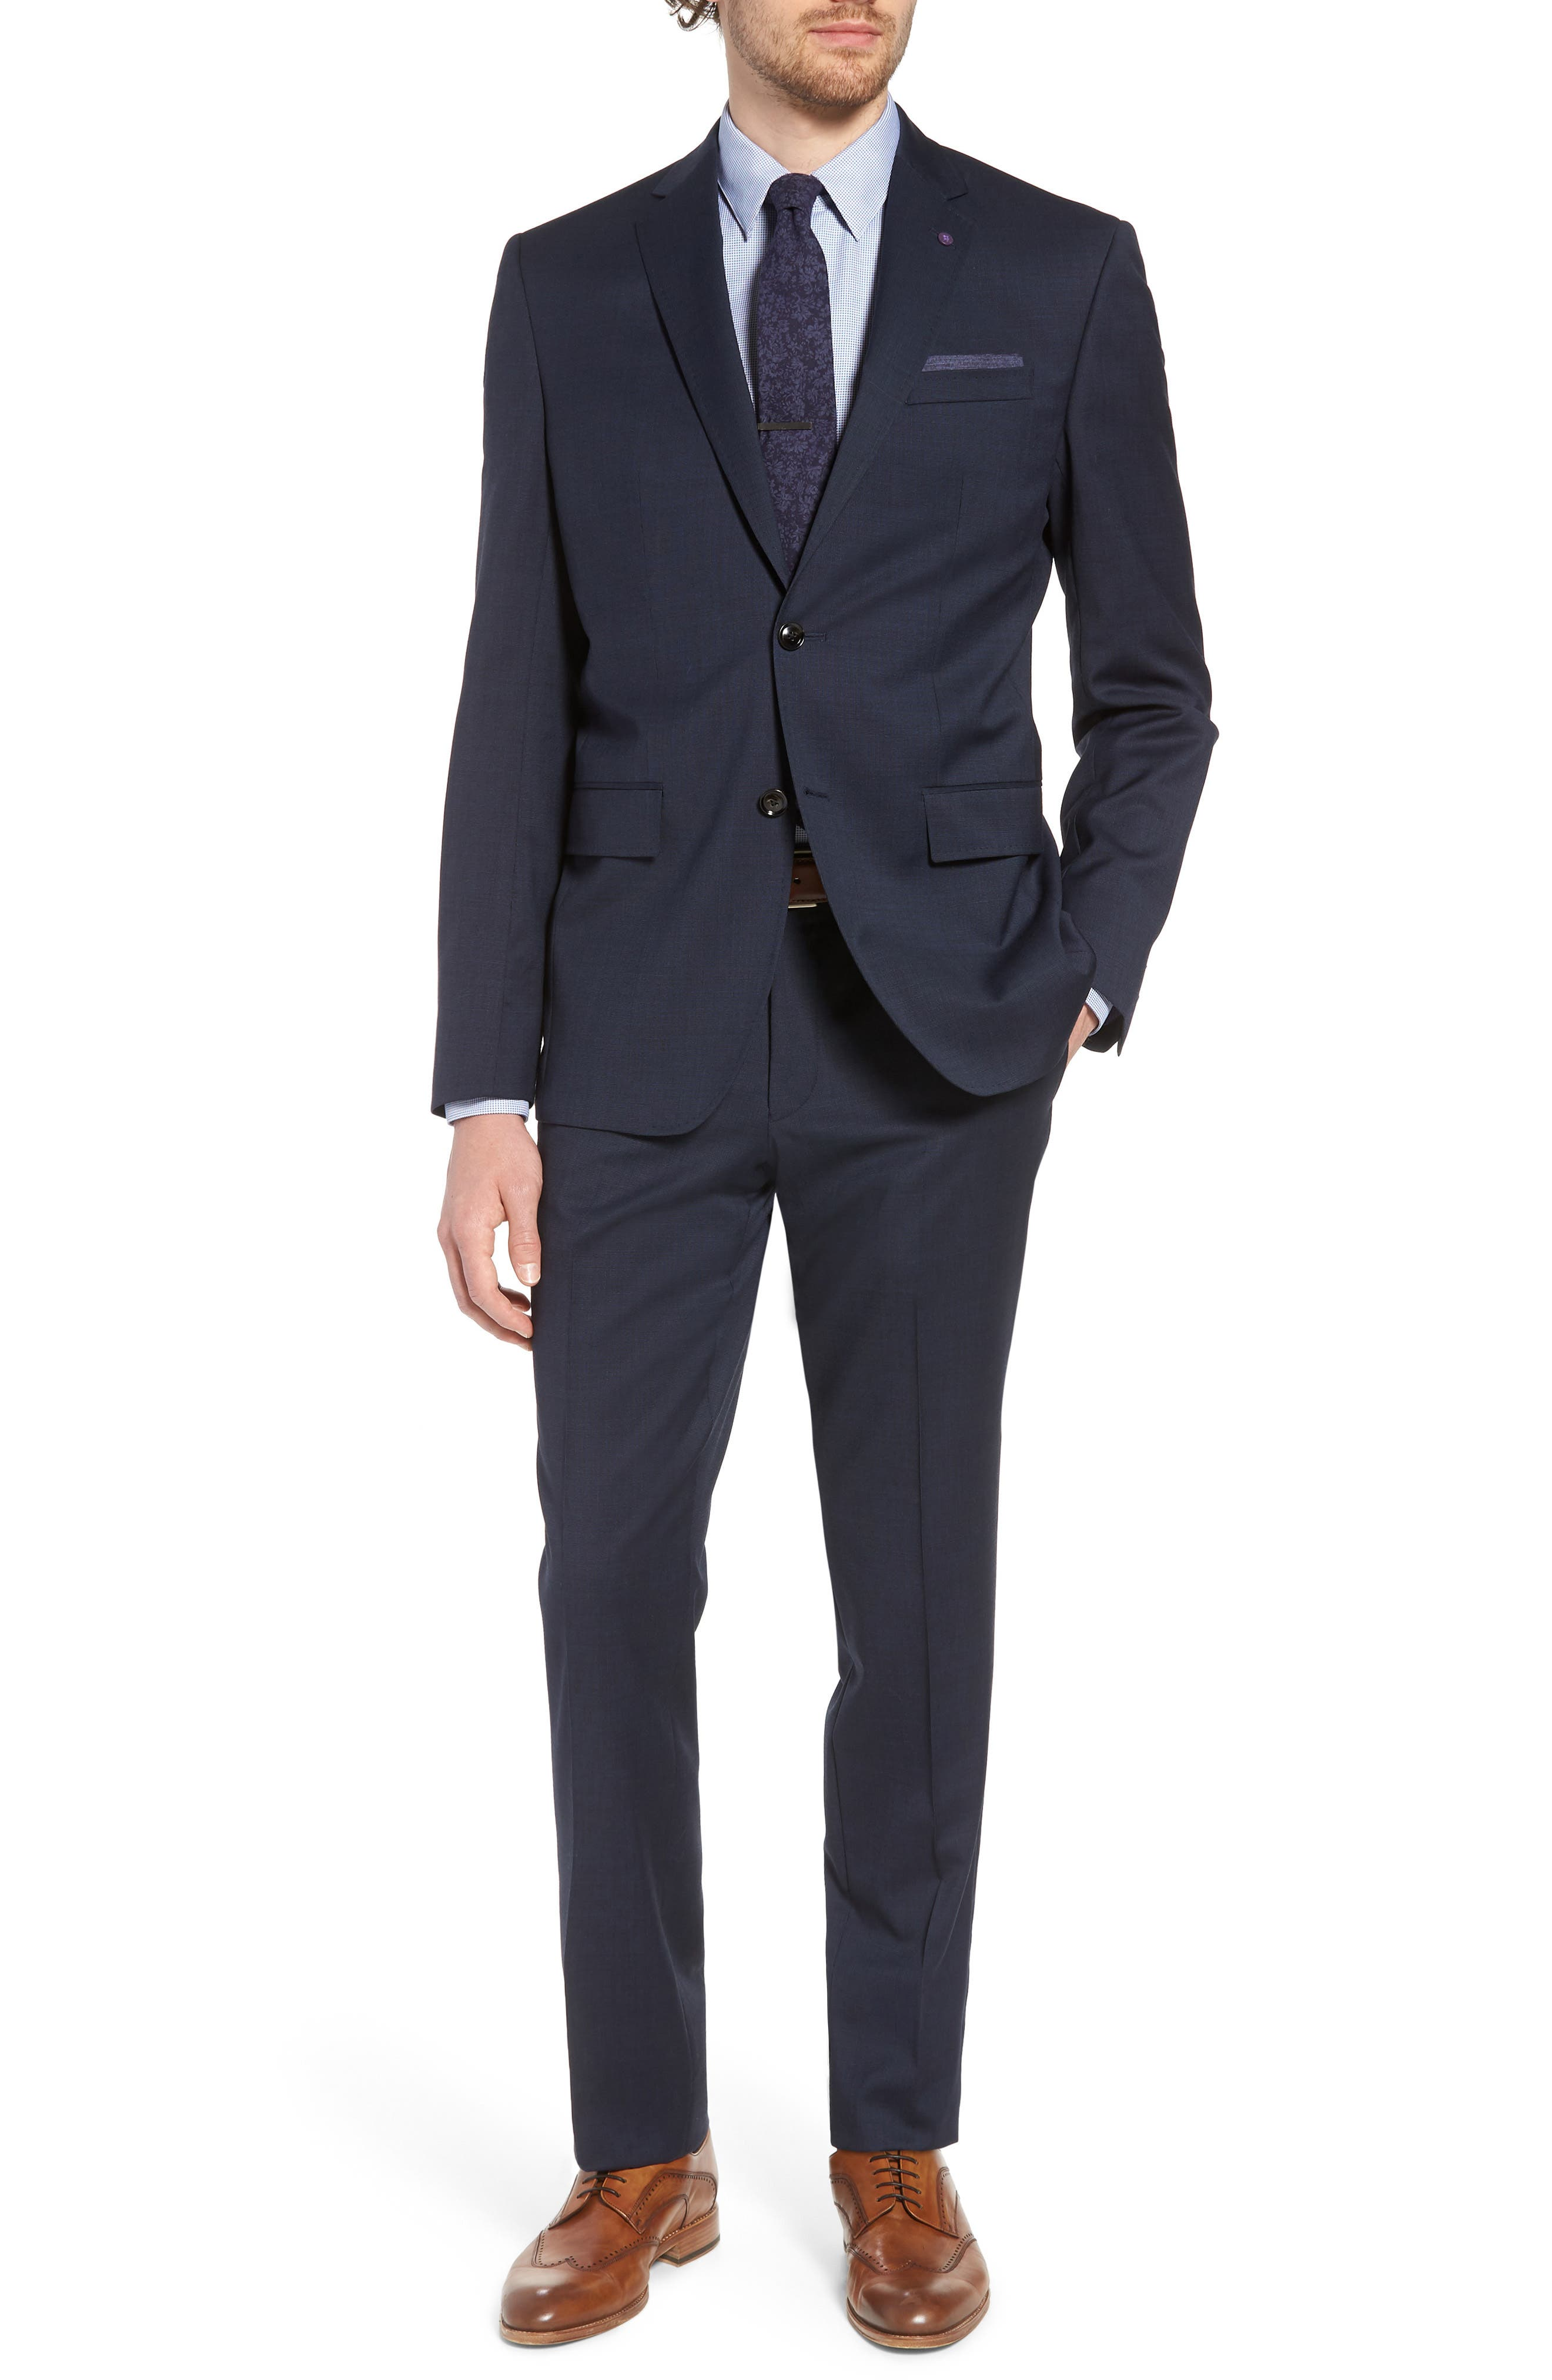 Jay Trim Fit Solid Wool Suit,                         Main,                         color, Navy